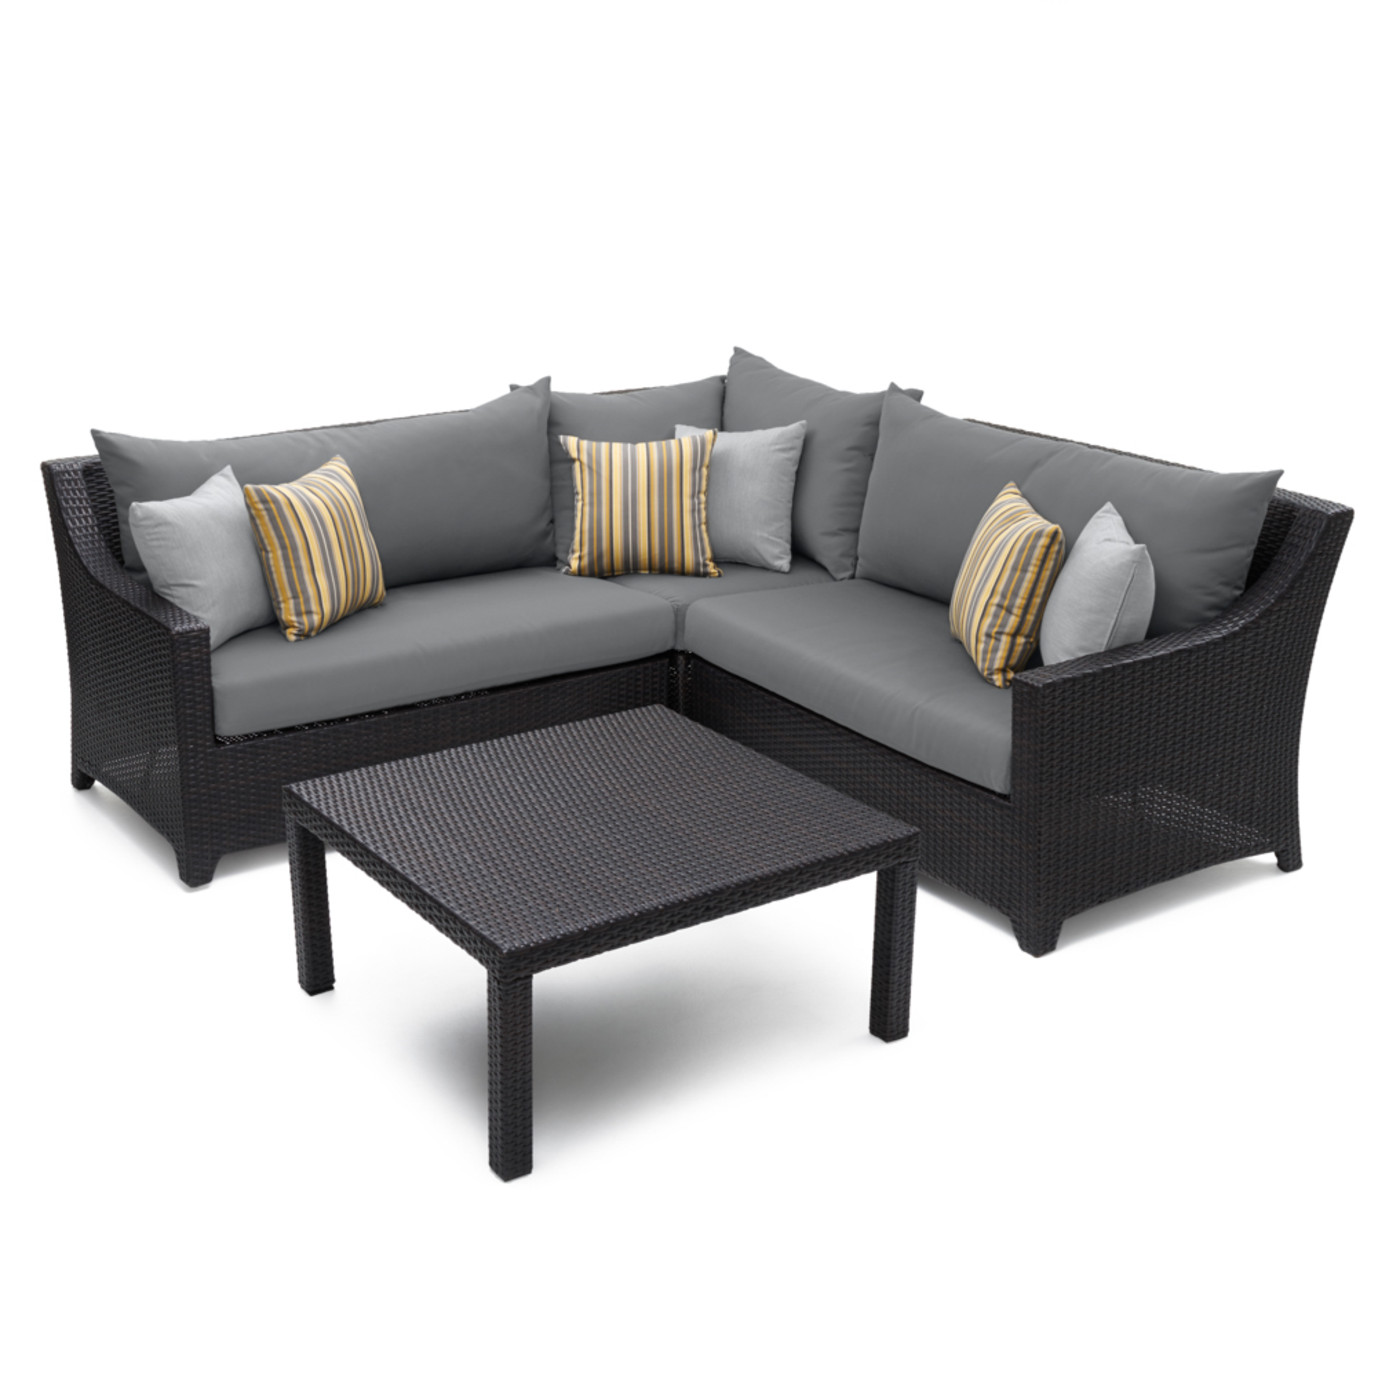 Deco™ 4 Piece Sectional and Table - Charcoal Gray